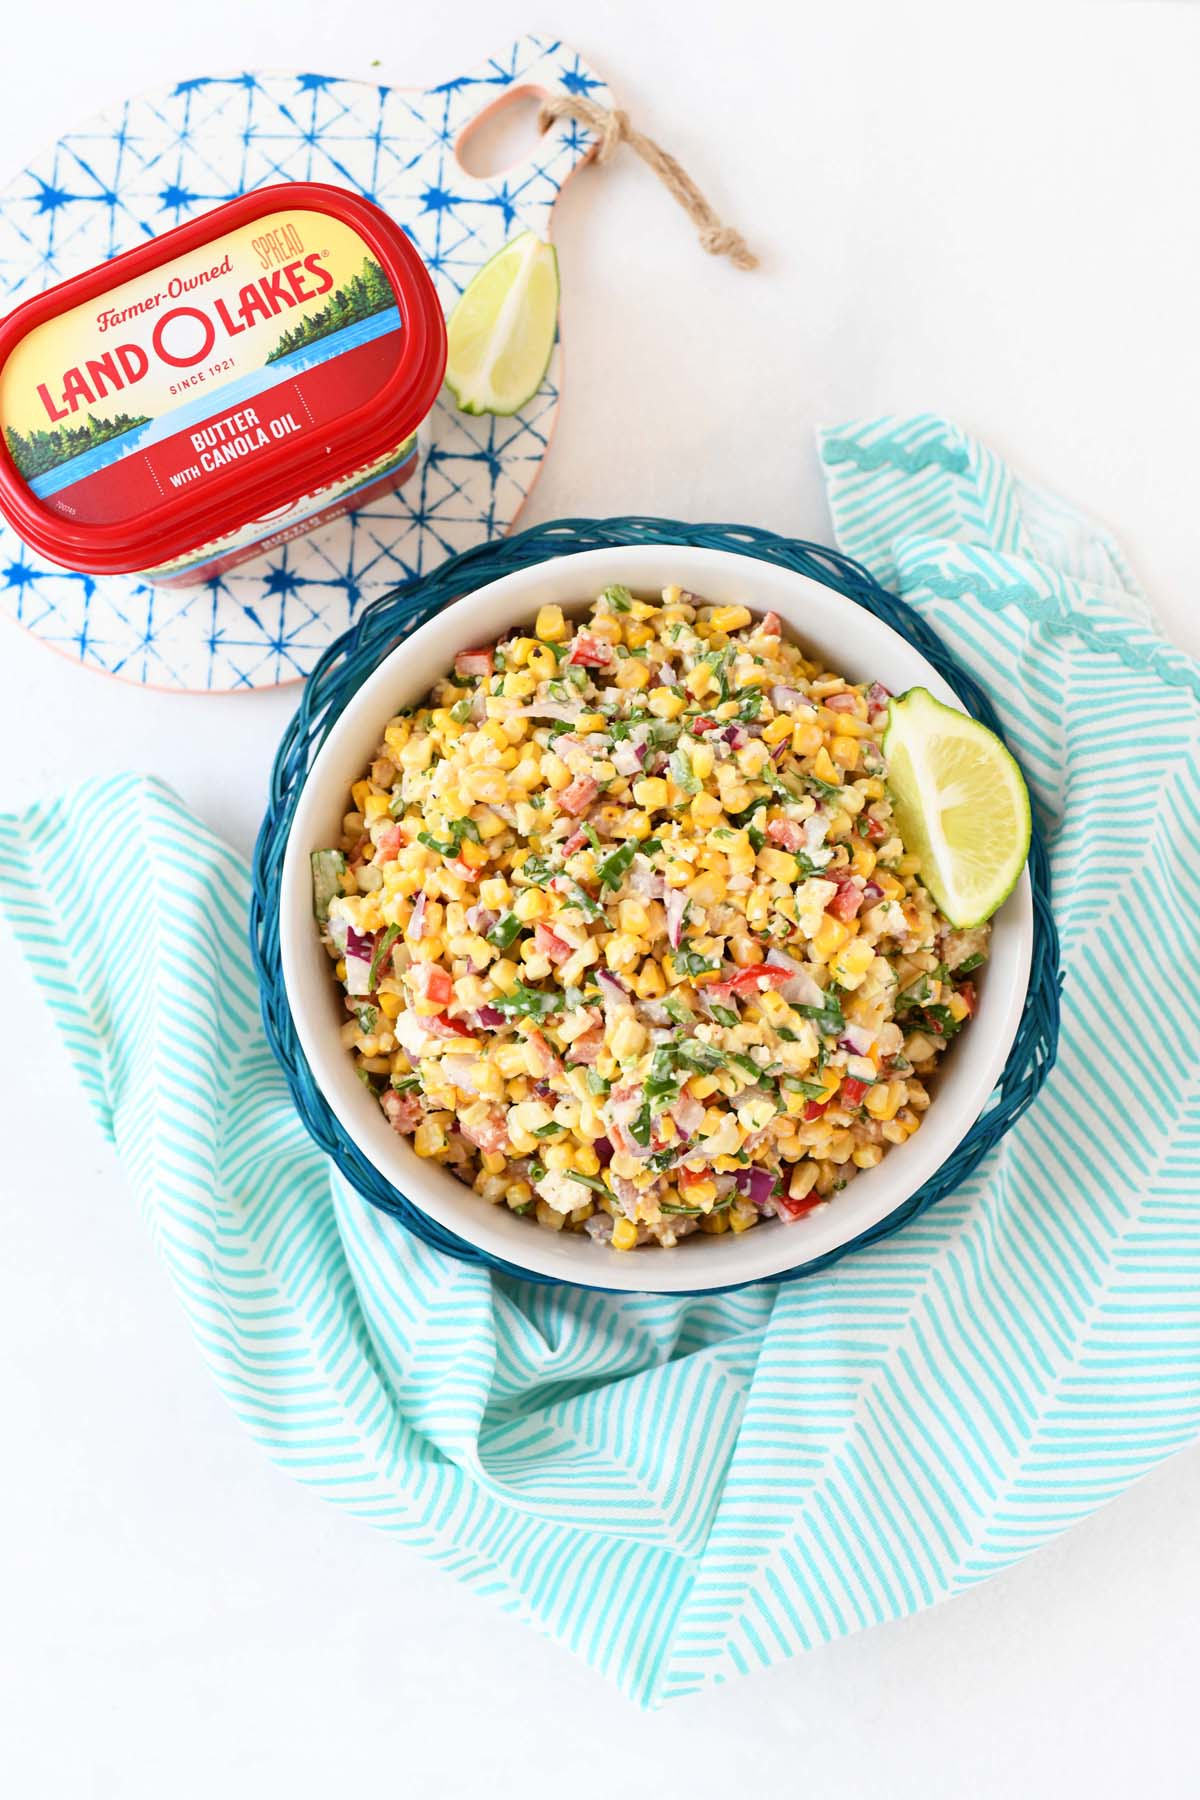 Mexican Street Corn salad in a glass bowl near a blue napkin and butter tub.